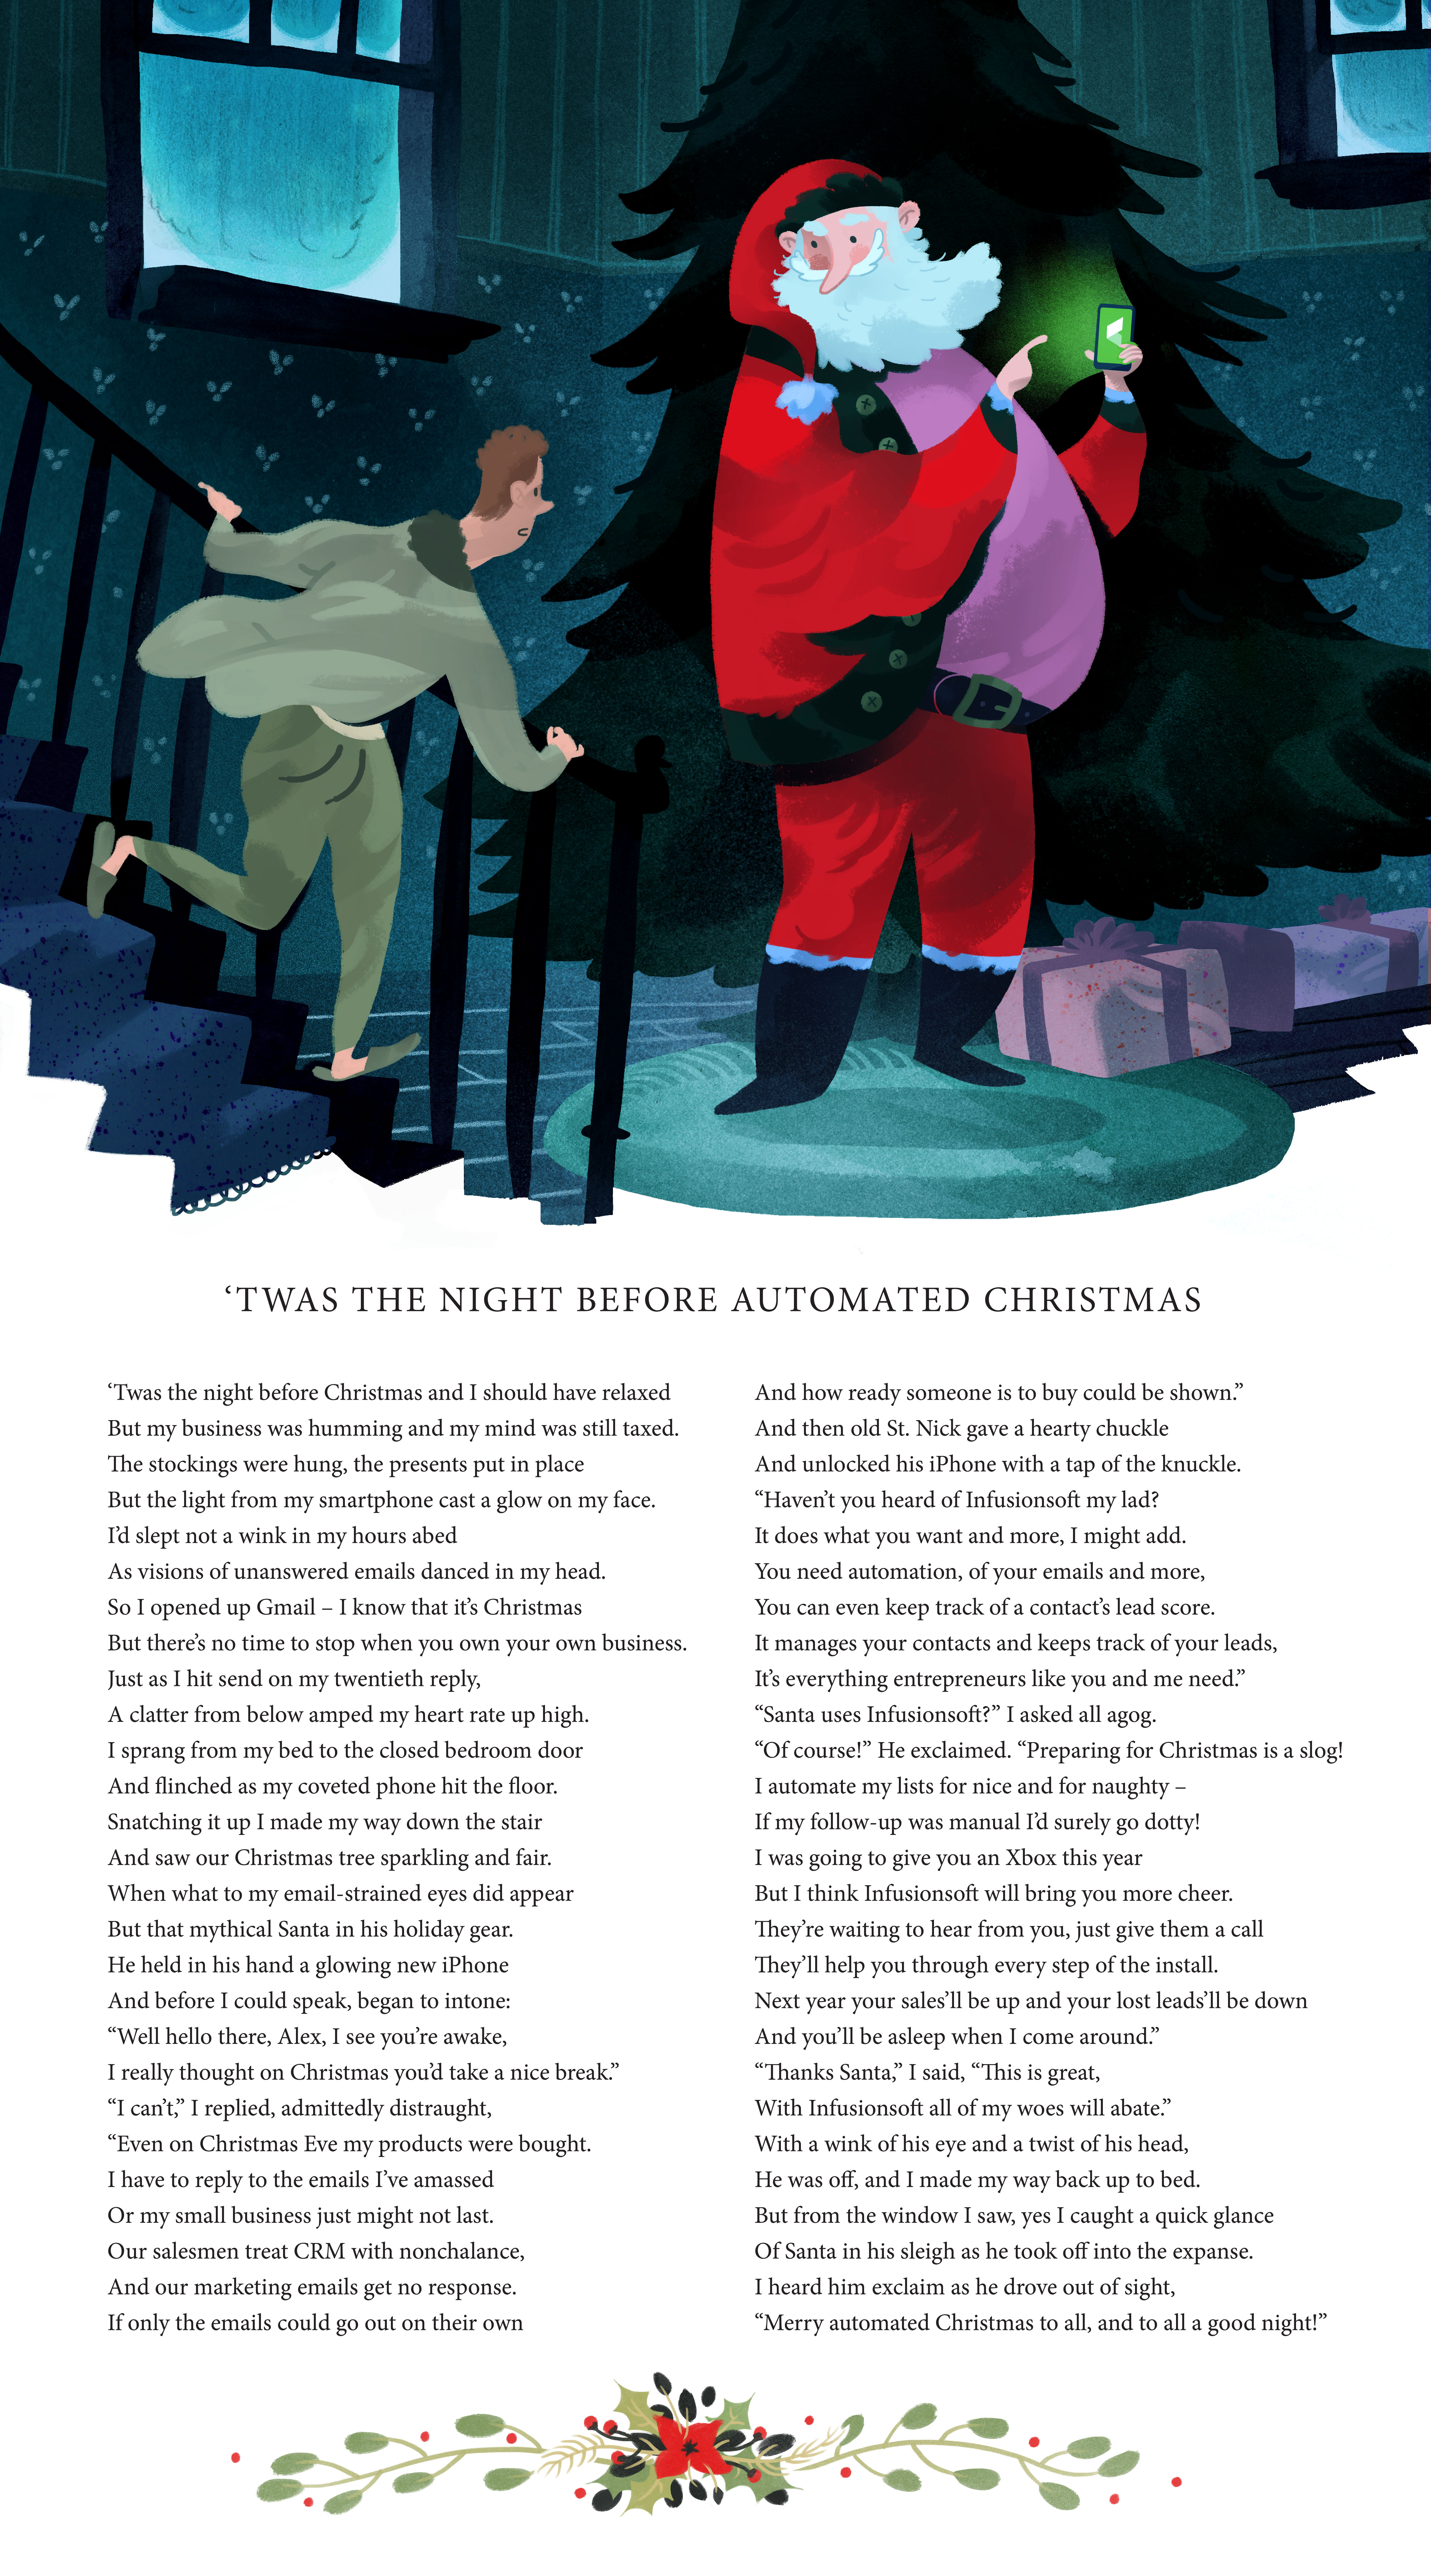 Twas the Night Before Automated Christmas.jpeg